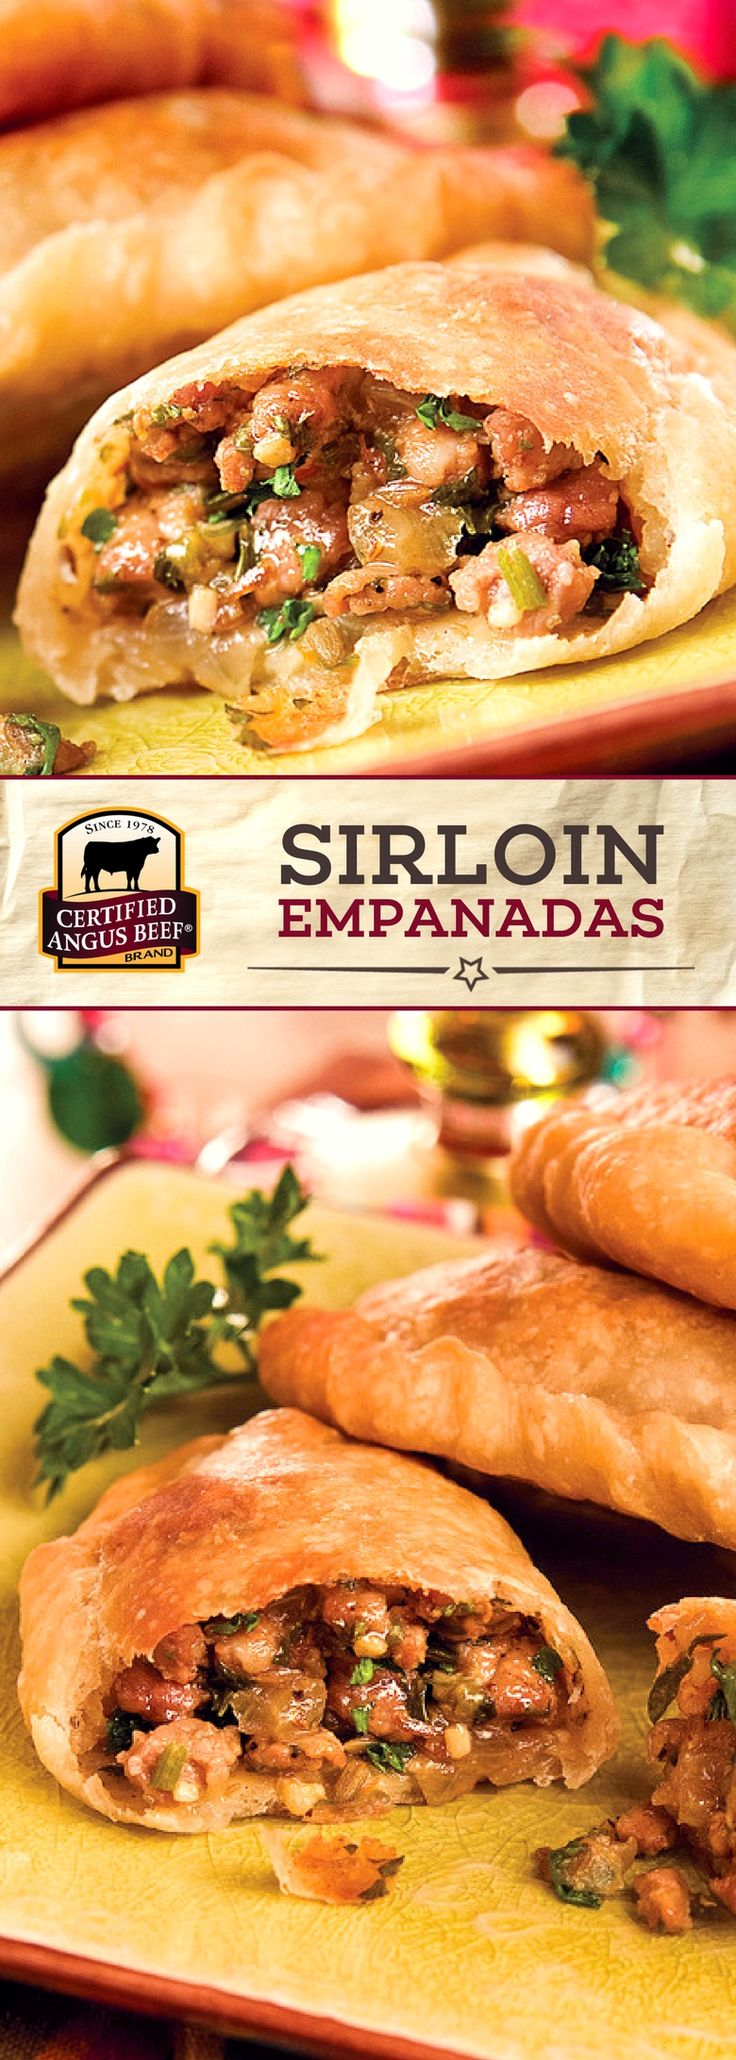 Certified Angus Beef®️ brand Sirloin Empanadas combines the BEST top sirloin or tri-tip steak with a blend of delicious spices, green chilies, and onion for a TASTY beef recipe! This dish makes a great appetizer recipe or main dish, and is PERFECT for game day!  #bestangusbeef #certifiedangusbeef #beefrecipe #gamedayfood #steakrecipe